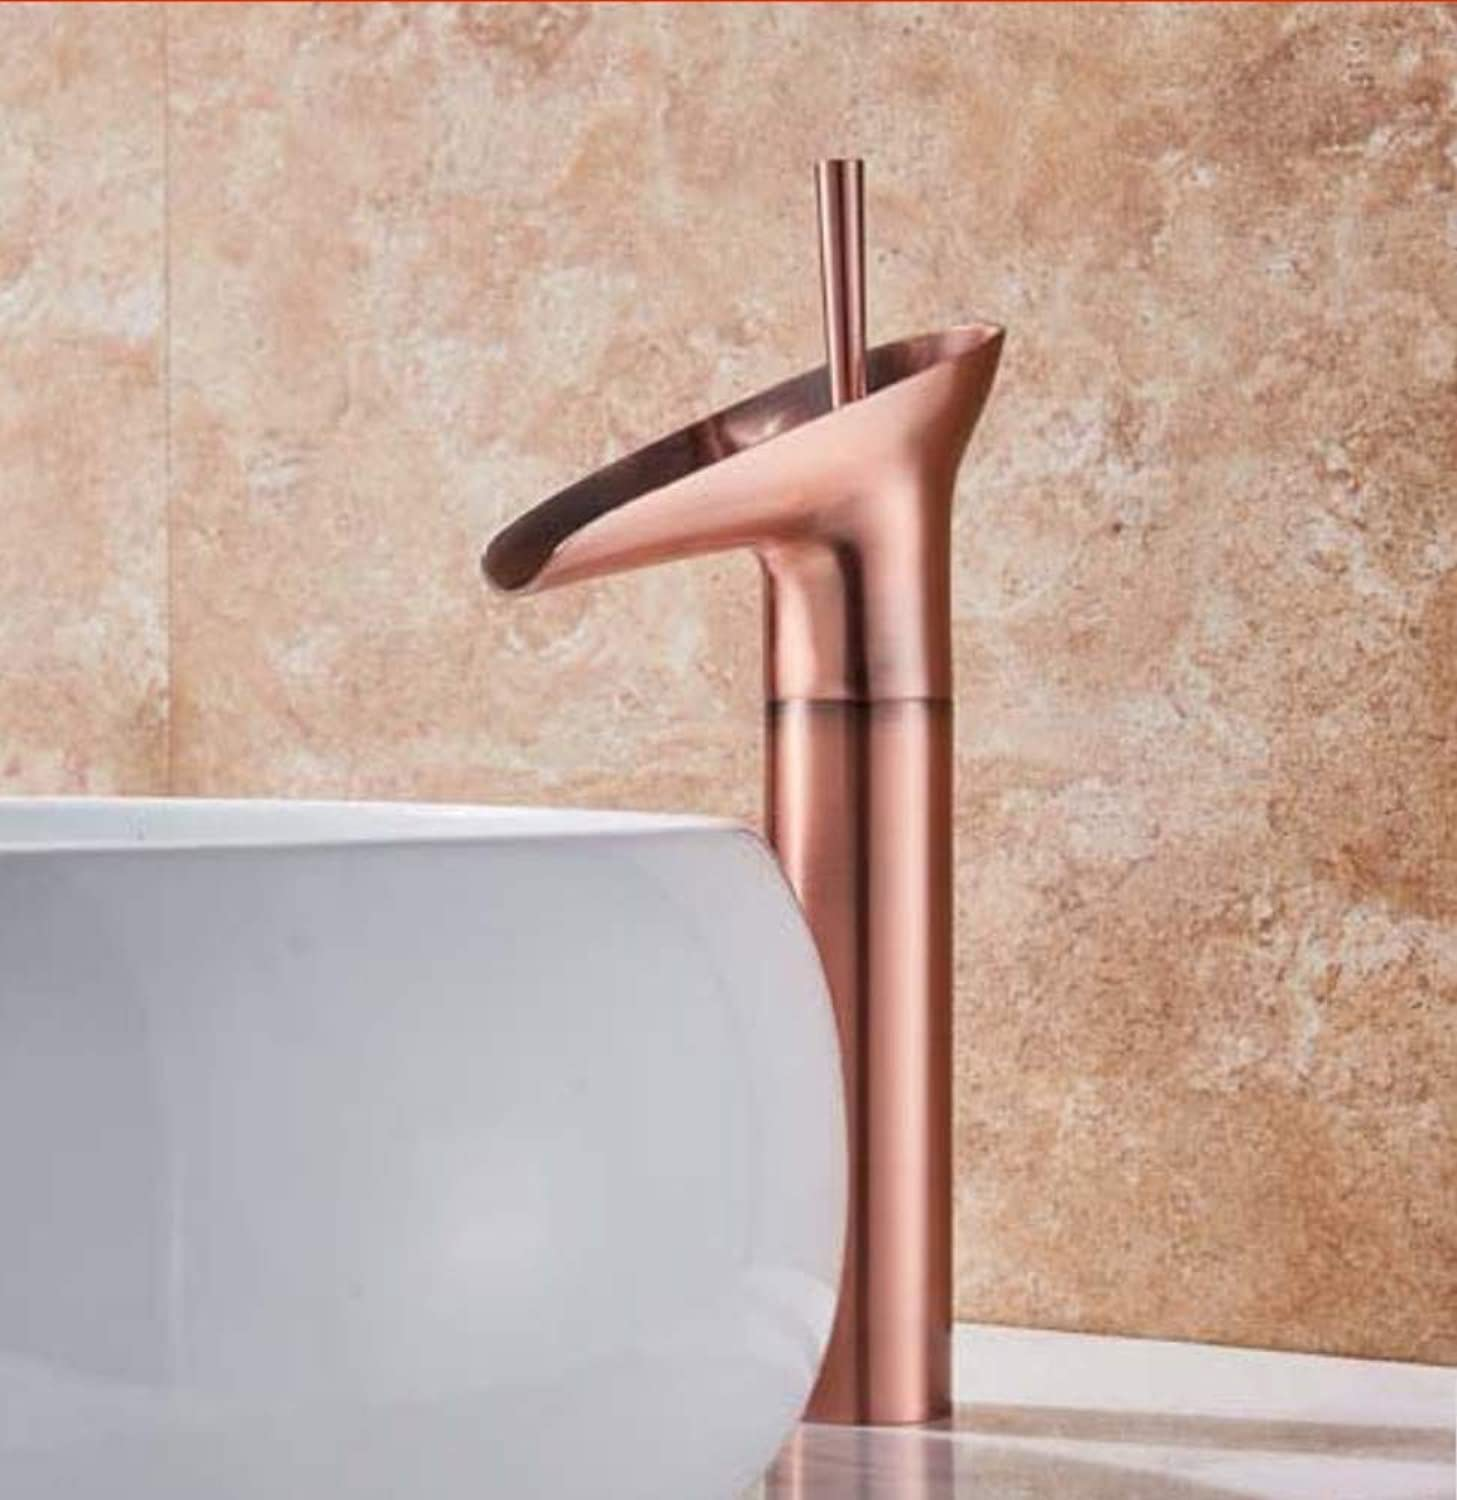 Water Tap golden Waterfall Spout Basin Faucet Deck Mounted Single Handle Bathroom Vessel Sink Mixer Tap One Hole Hot Cold Water Tap